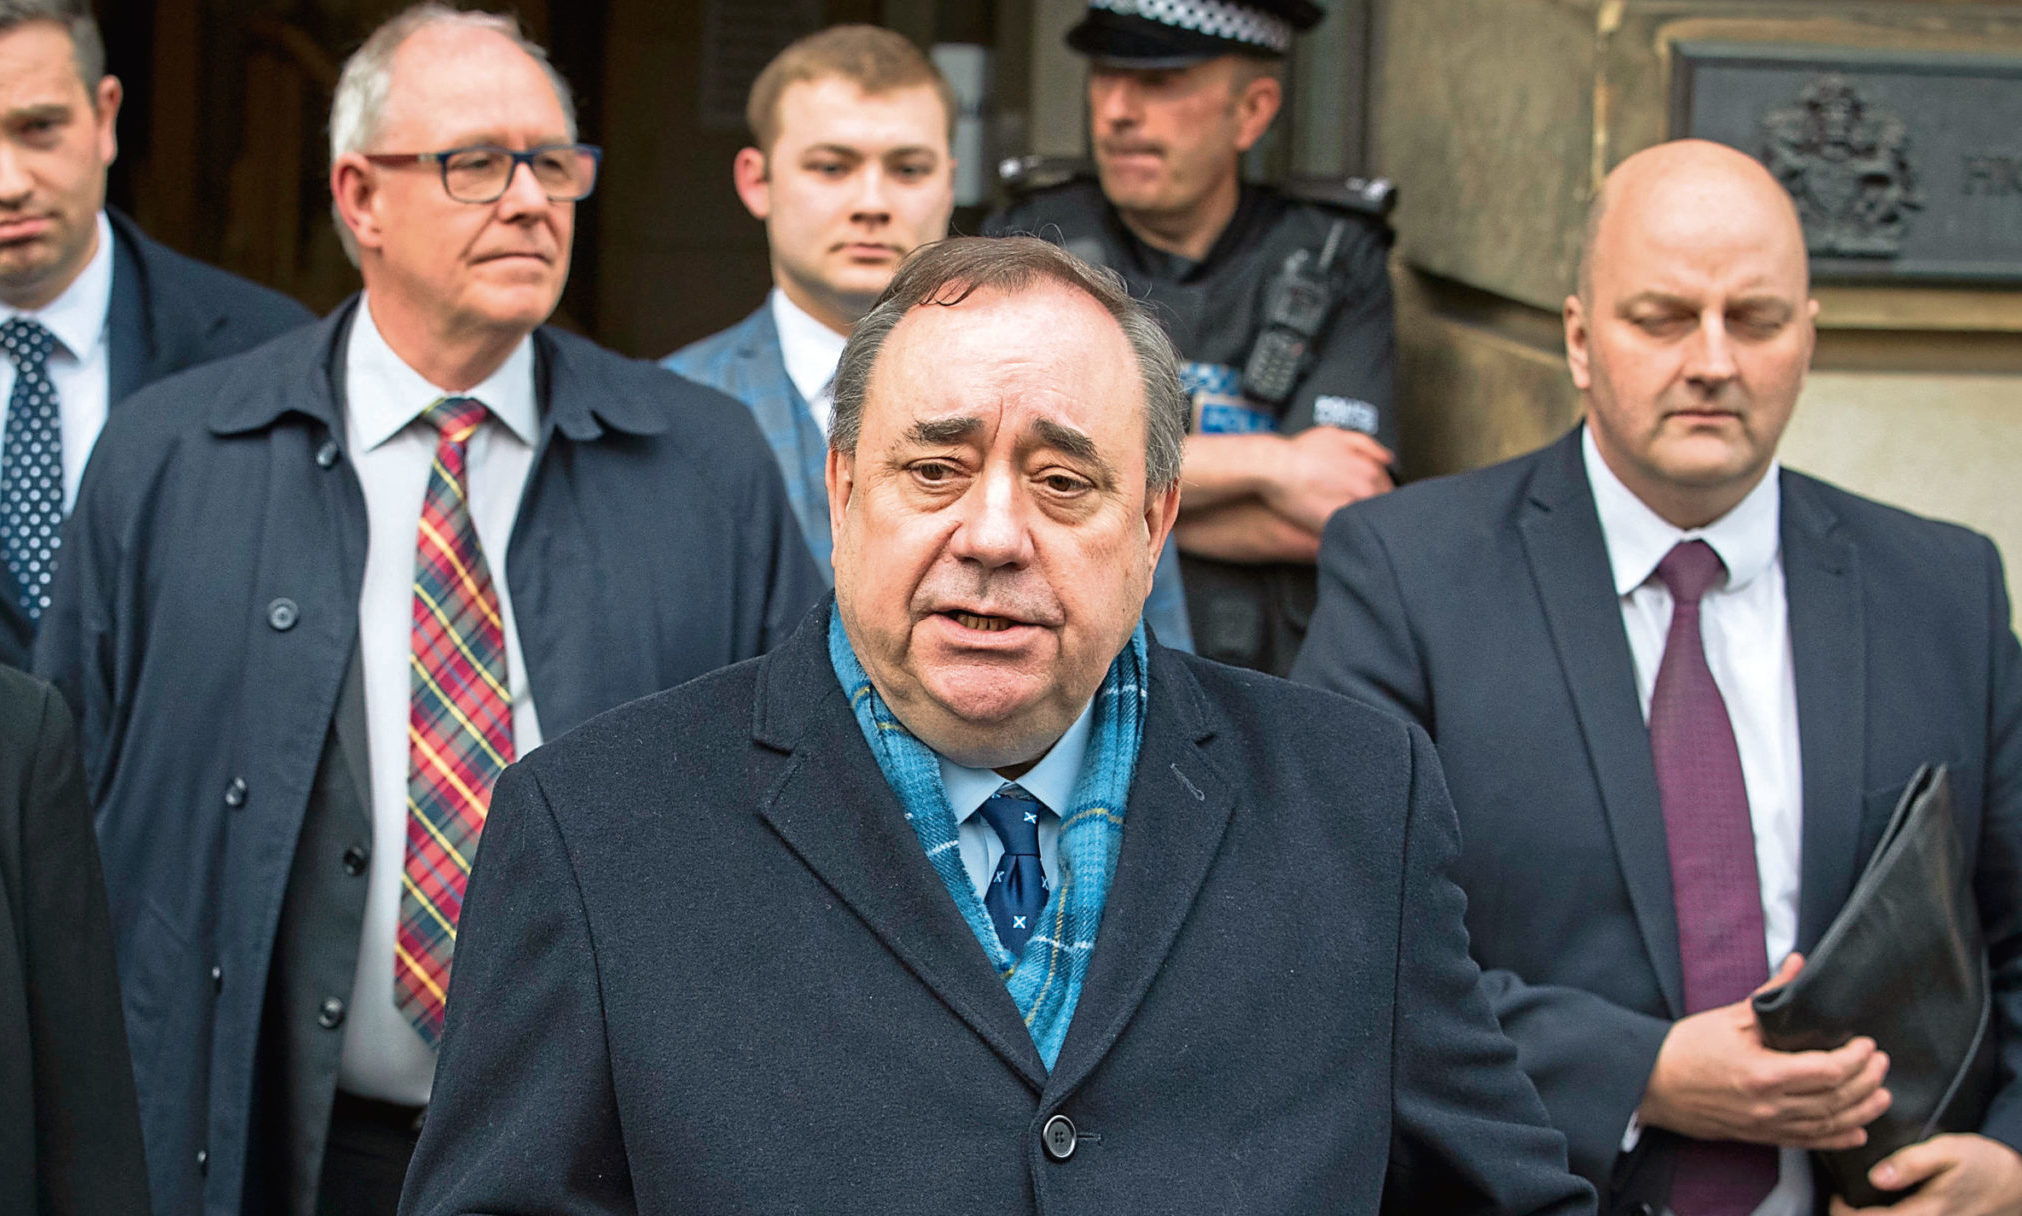 Alex Salmond leaving the High Court in Edinburgh